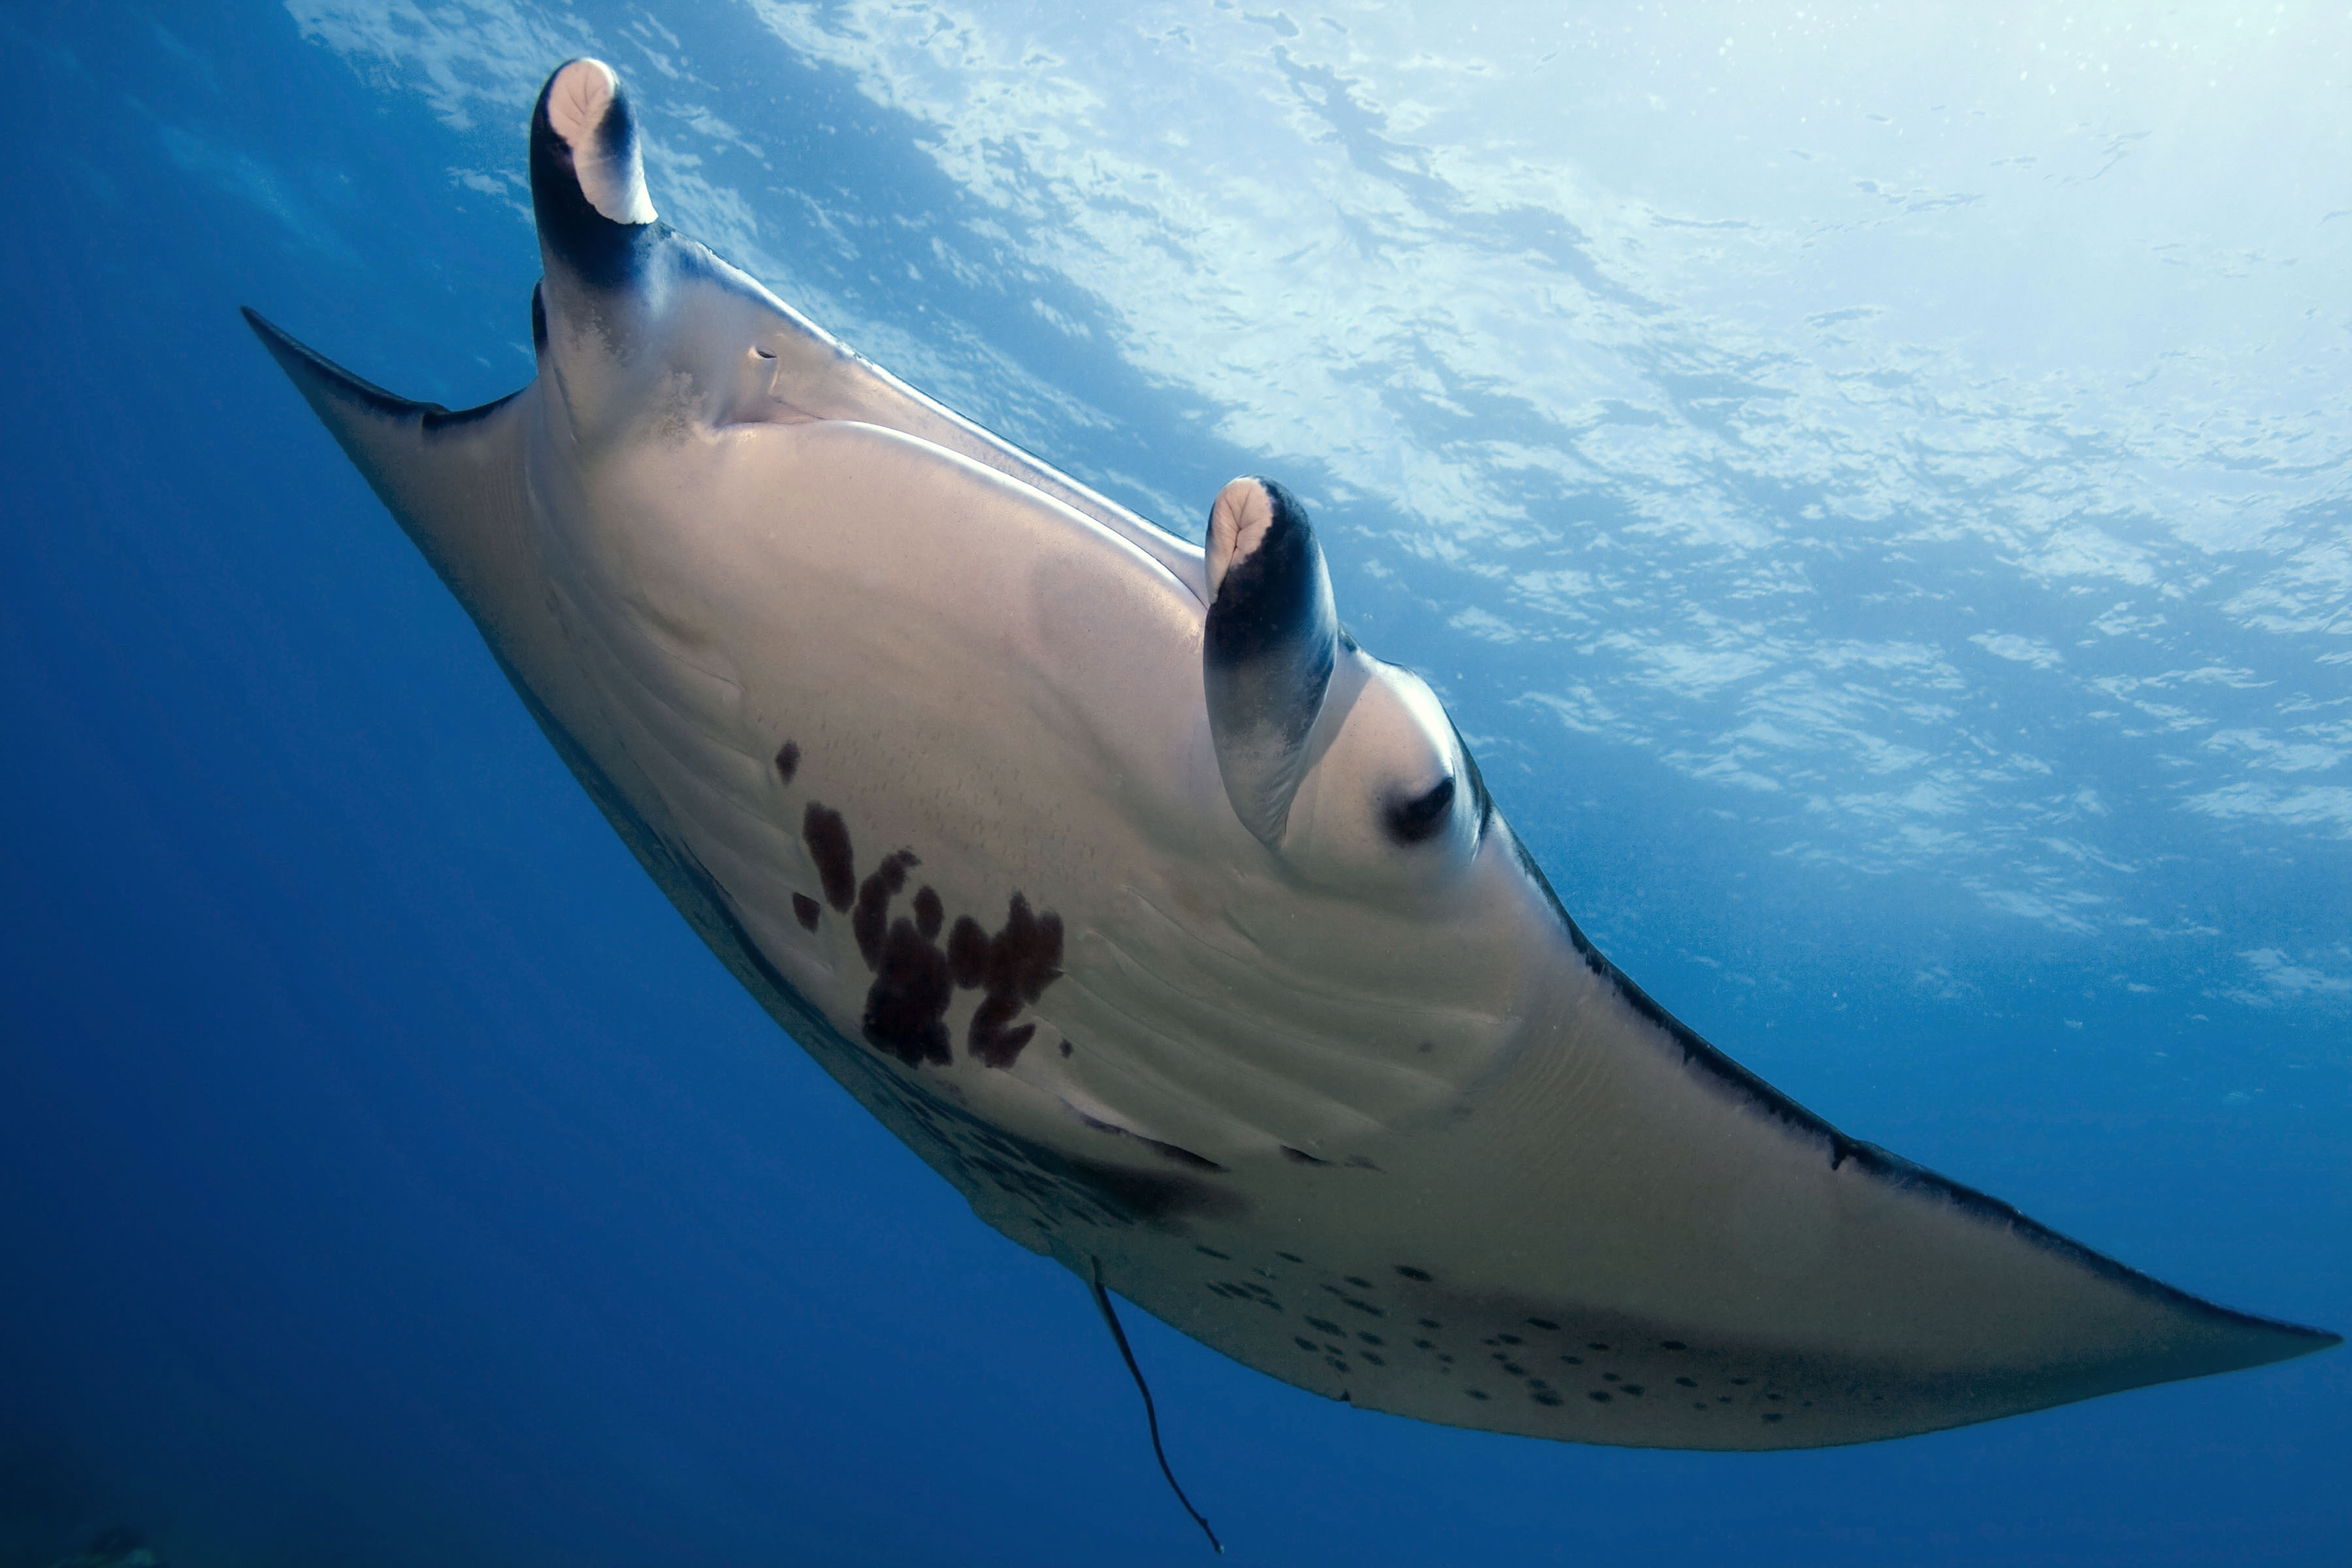 Manta rays at Keauhou Bay on the Big Island (photo provided by Second Wave Ocean Images for Sheraton Kona)